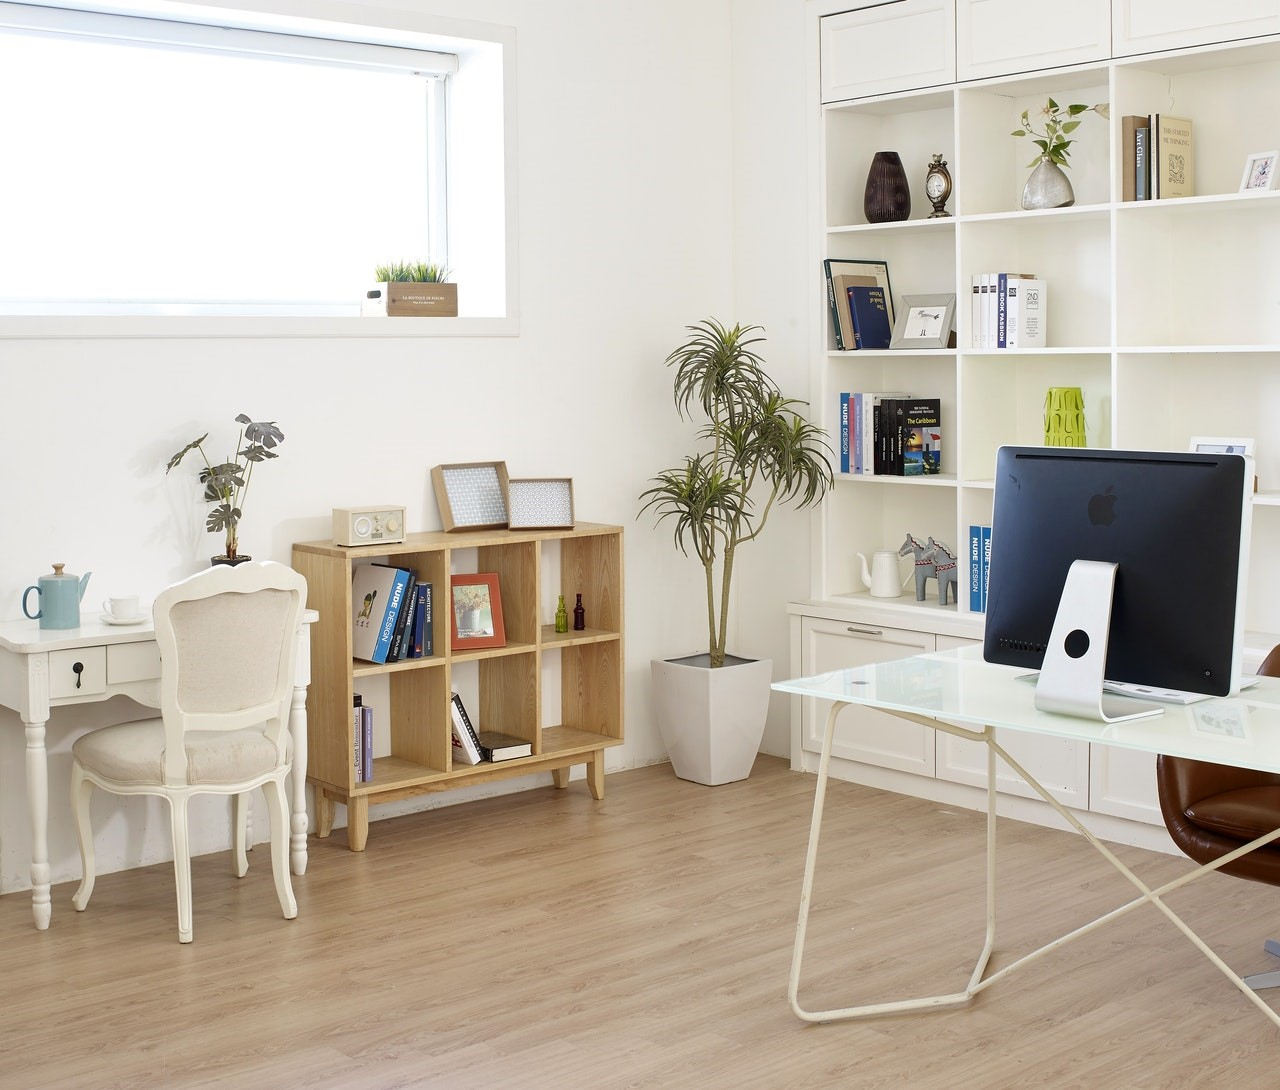 image - How to Design Your Home Study Space to Achieve the Perfect Atmosphere